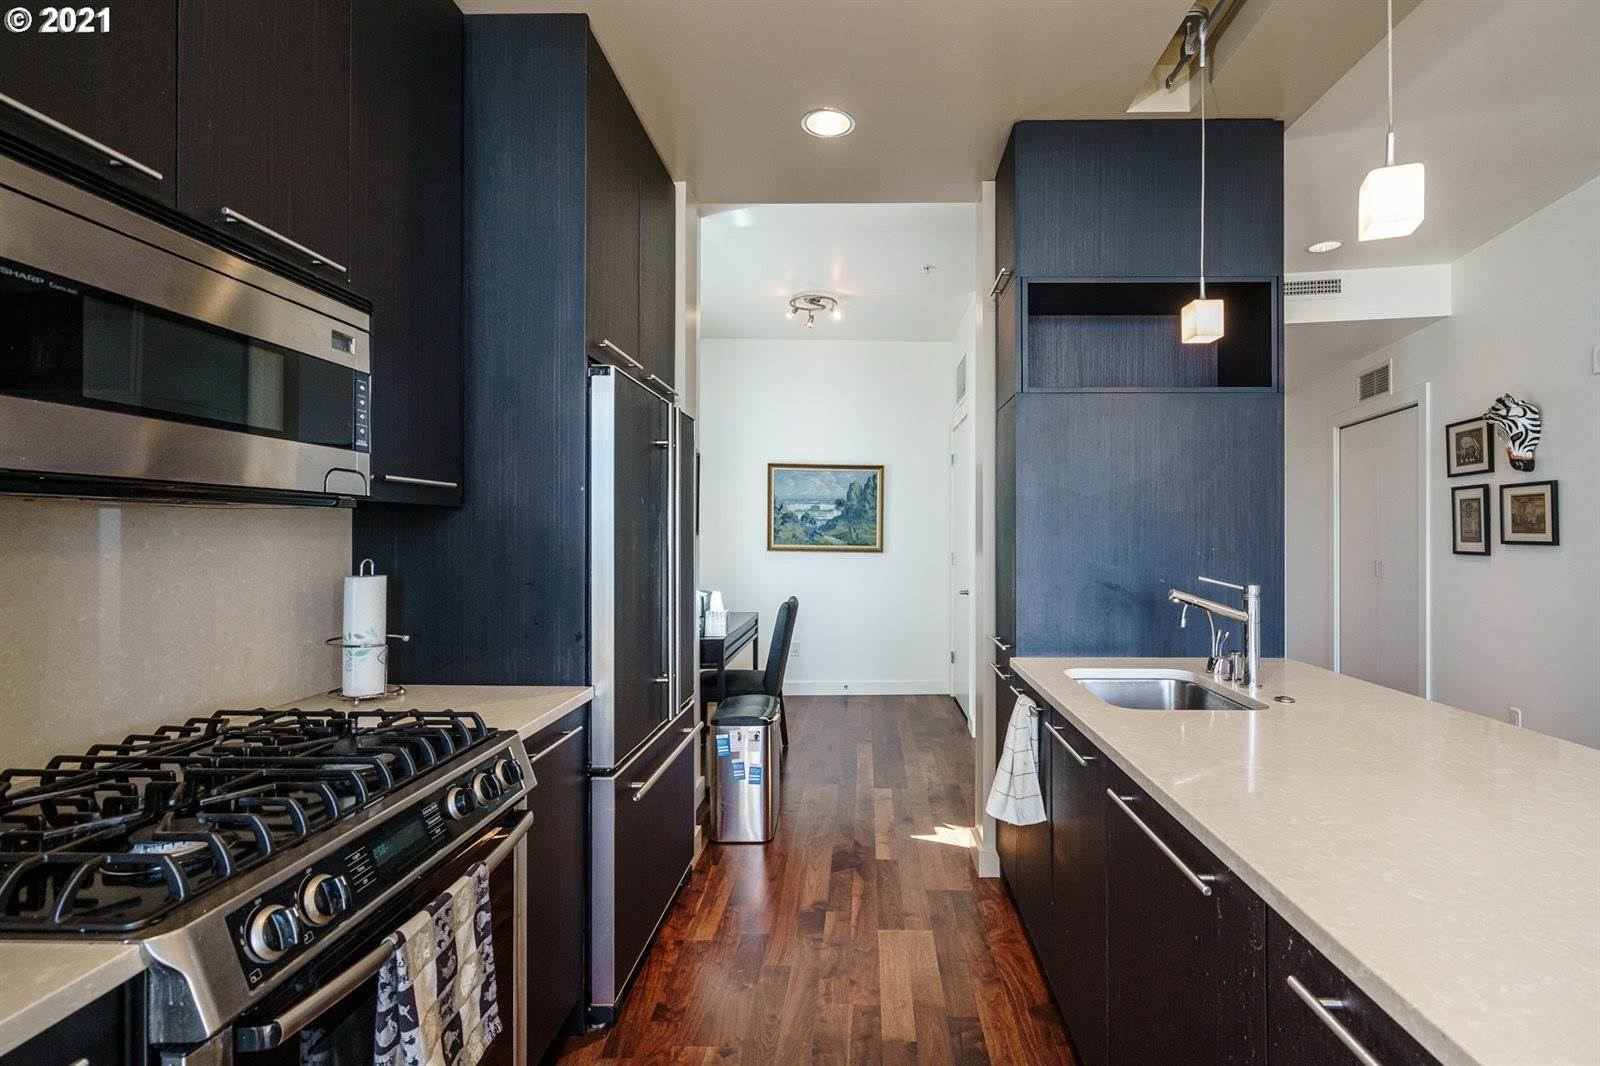 949 NW Overton St, #1001, Portland, OR 97209